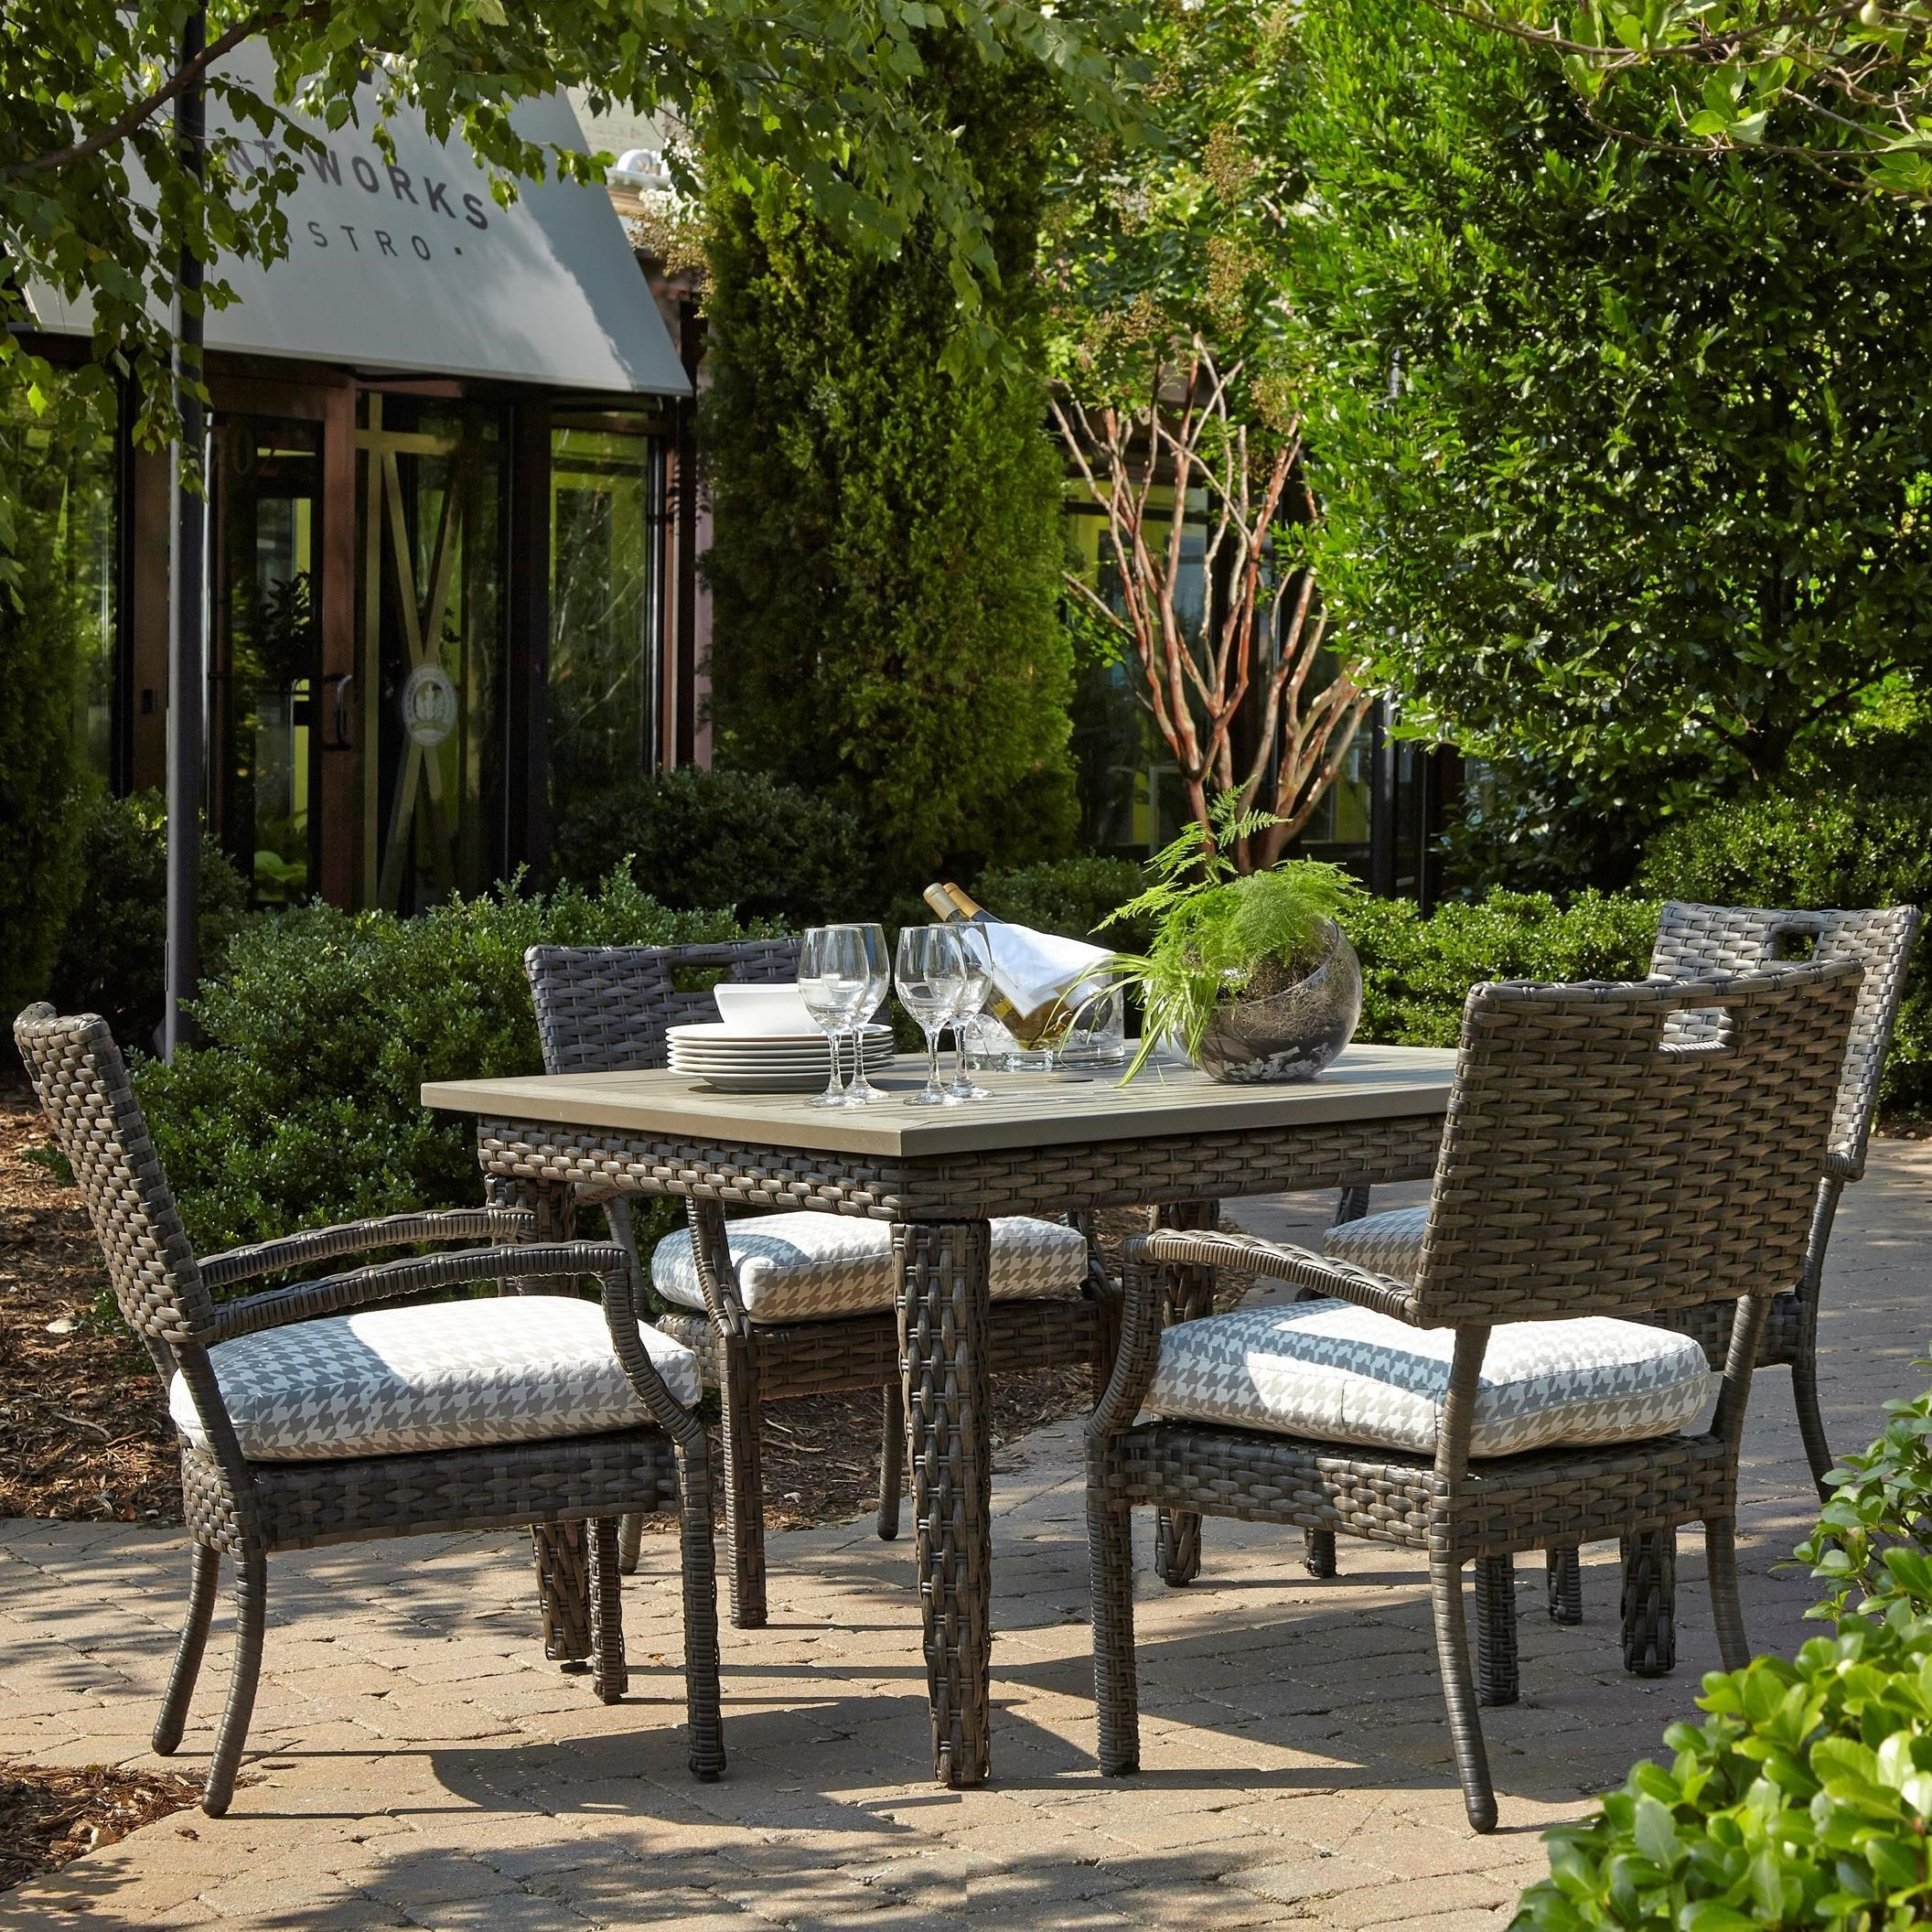 5 Pc Outdoor Dining Set w/ Drain Cushions